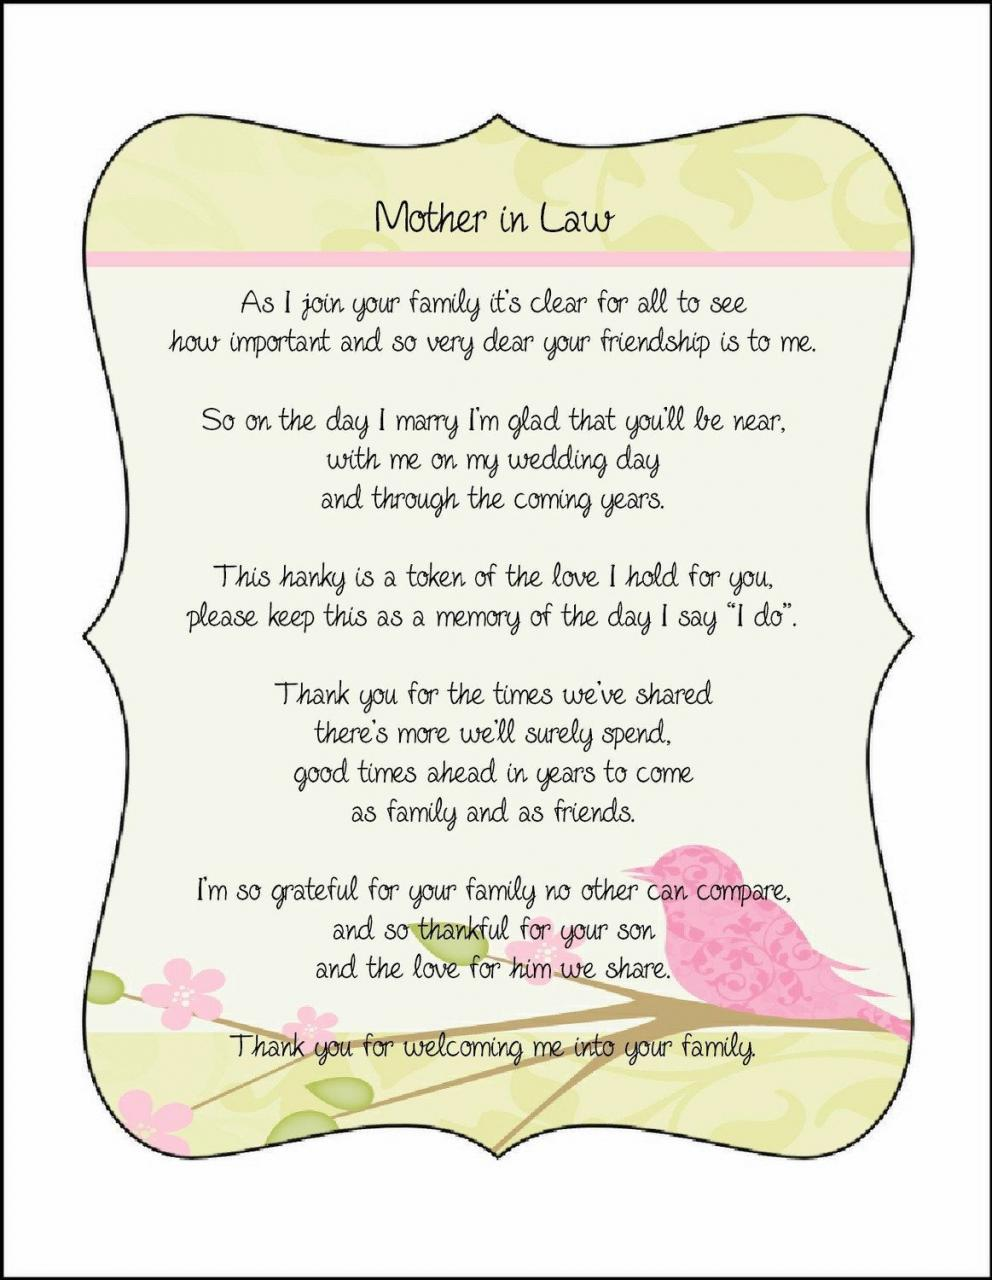 Mother In Law Poem Card Great Addition To A Personalized Wedding Handkerchief   Via Etsy